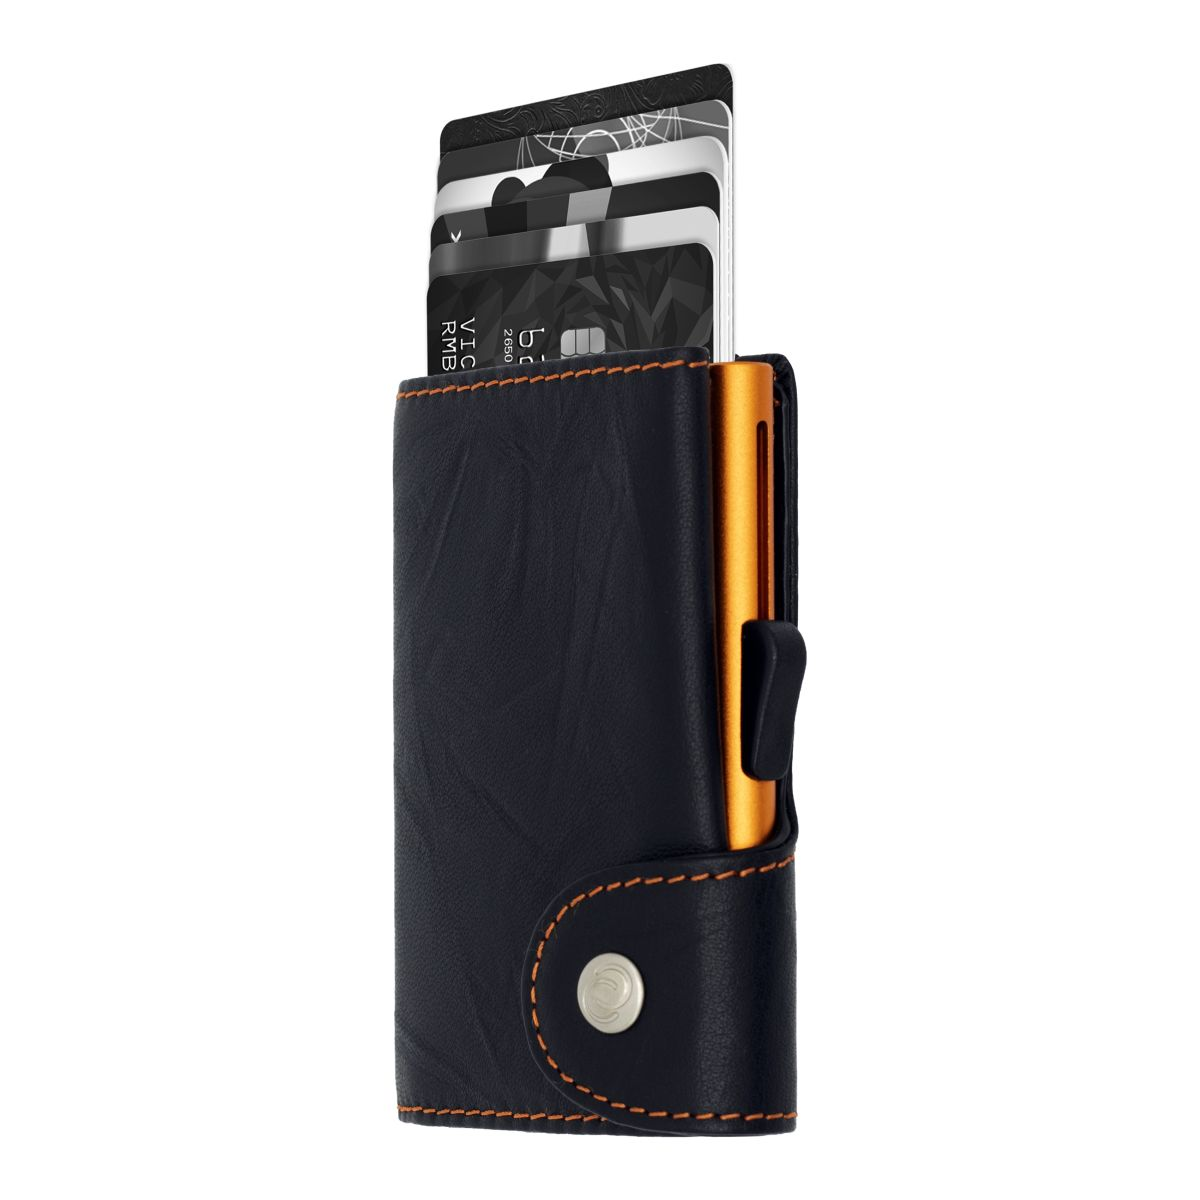 Aluminum Card Holder with Genuine Leather - Black / Orange